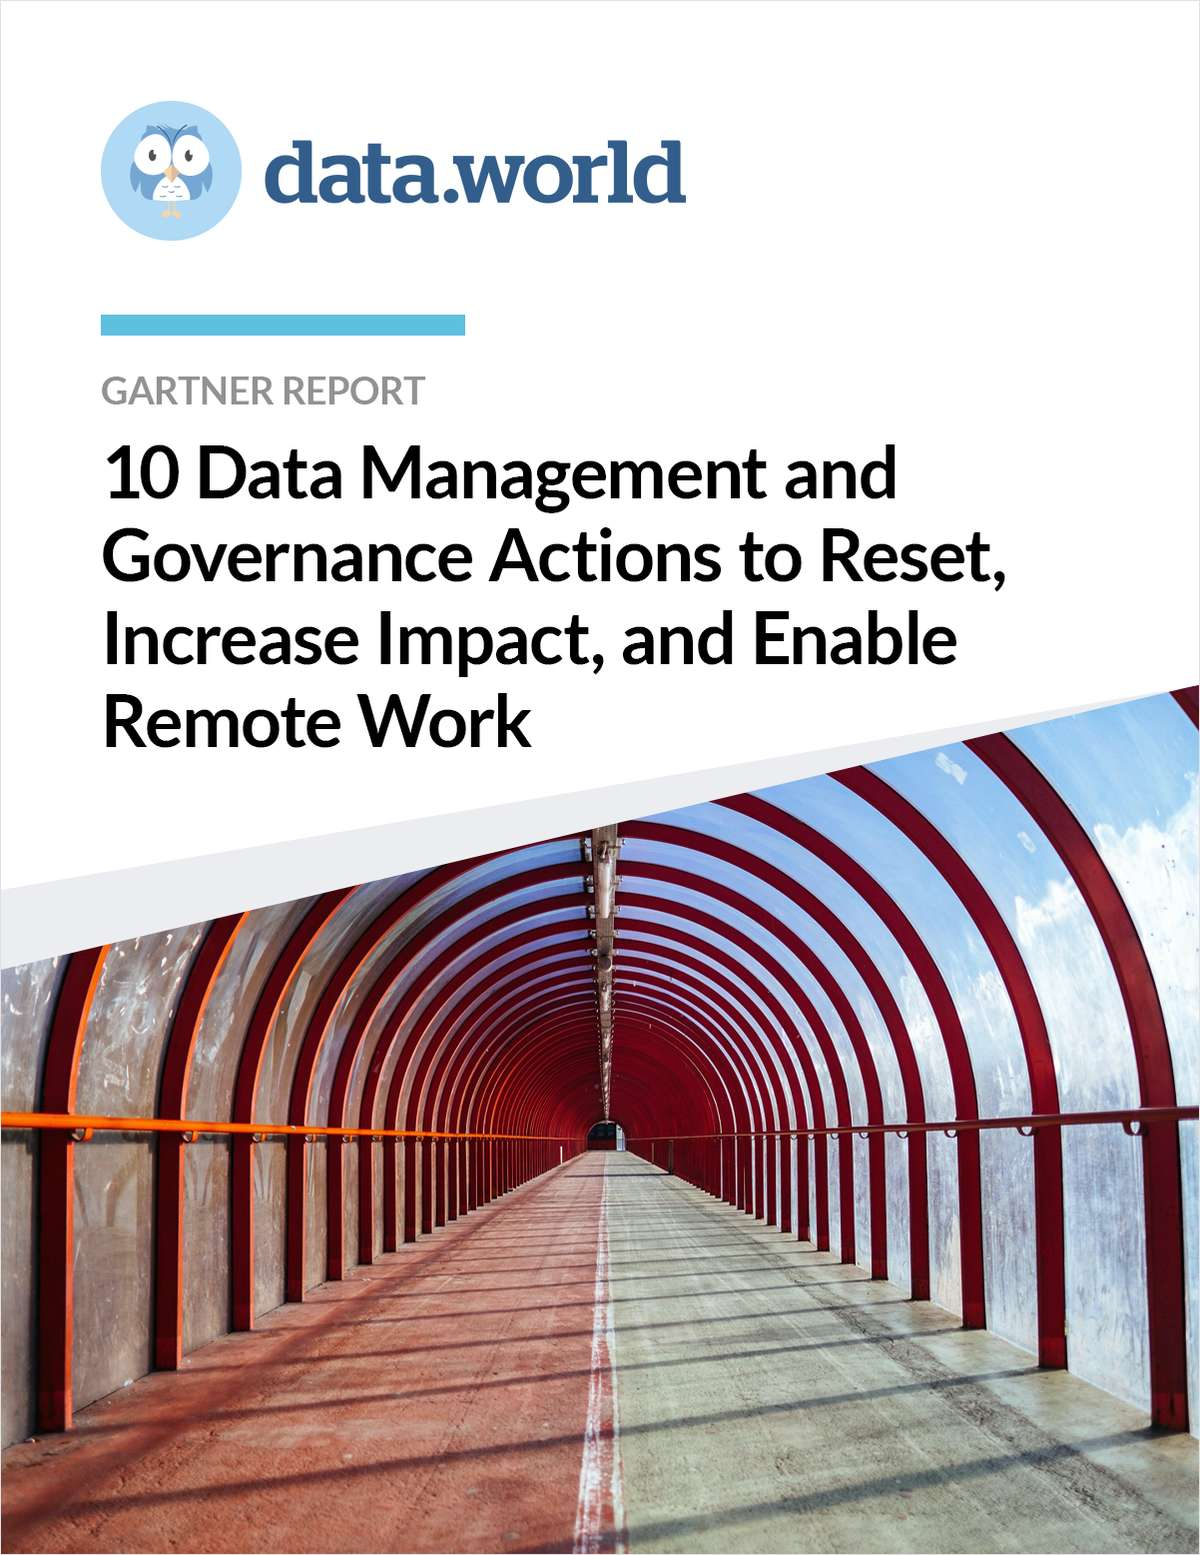 Gartner Report: 10 Data Management and Governance Actions in order to Reset, Increase Impact and Enable Remote Work